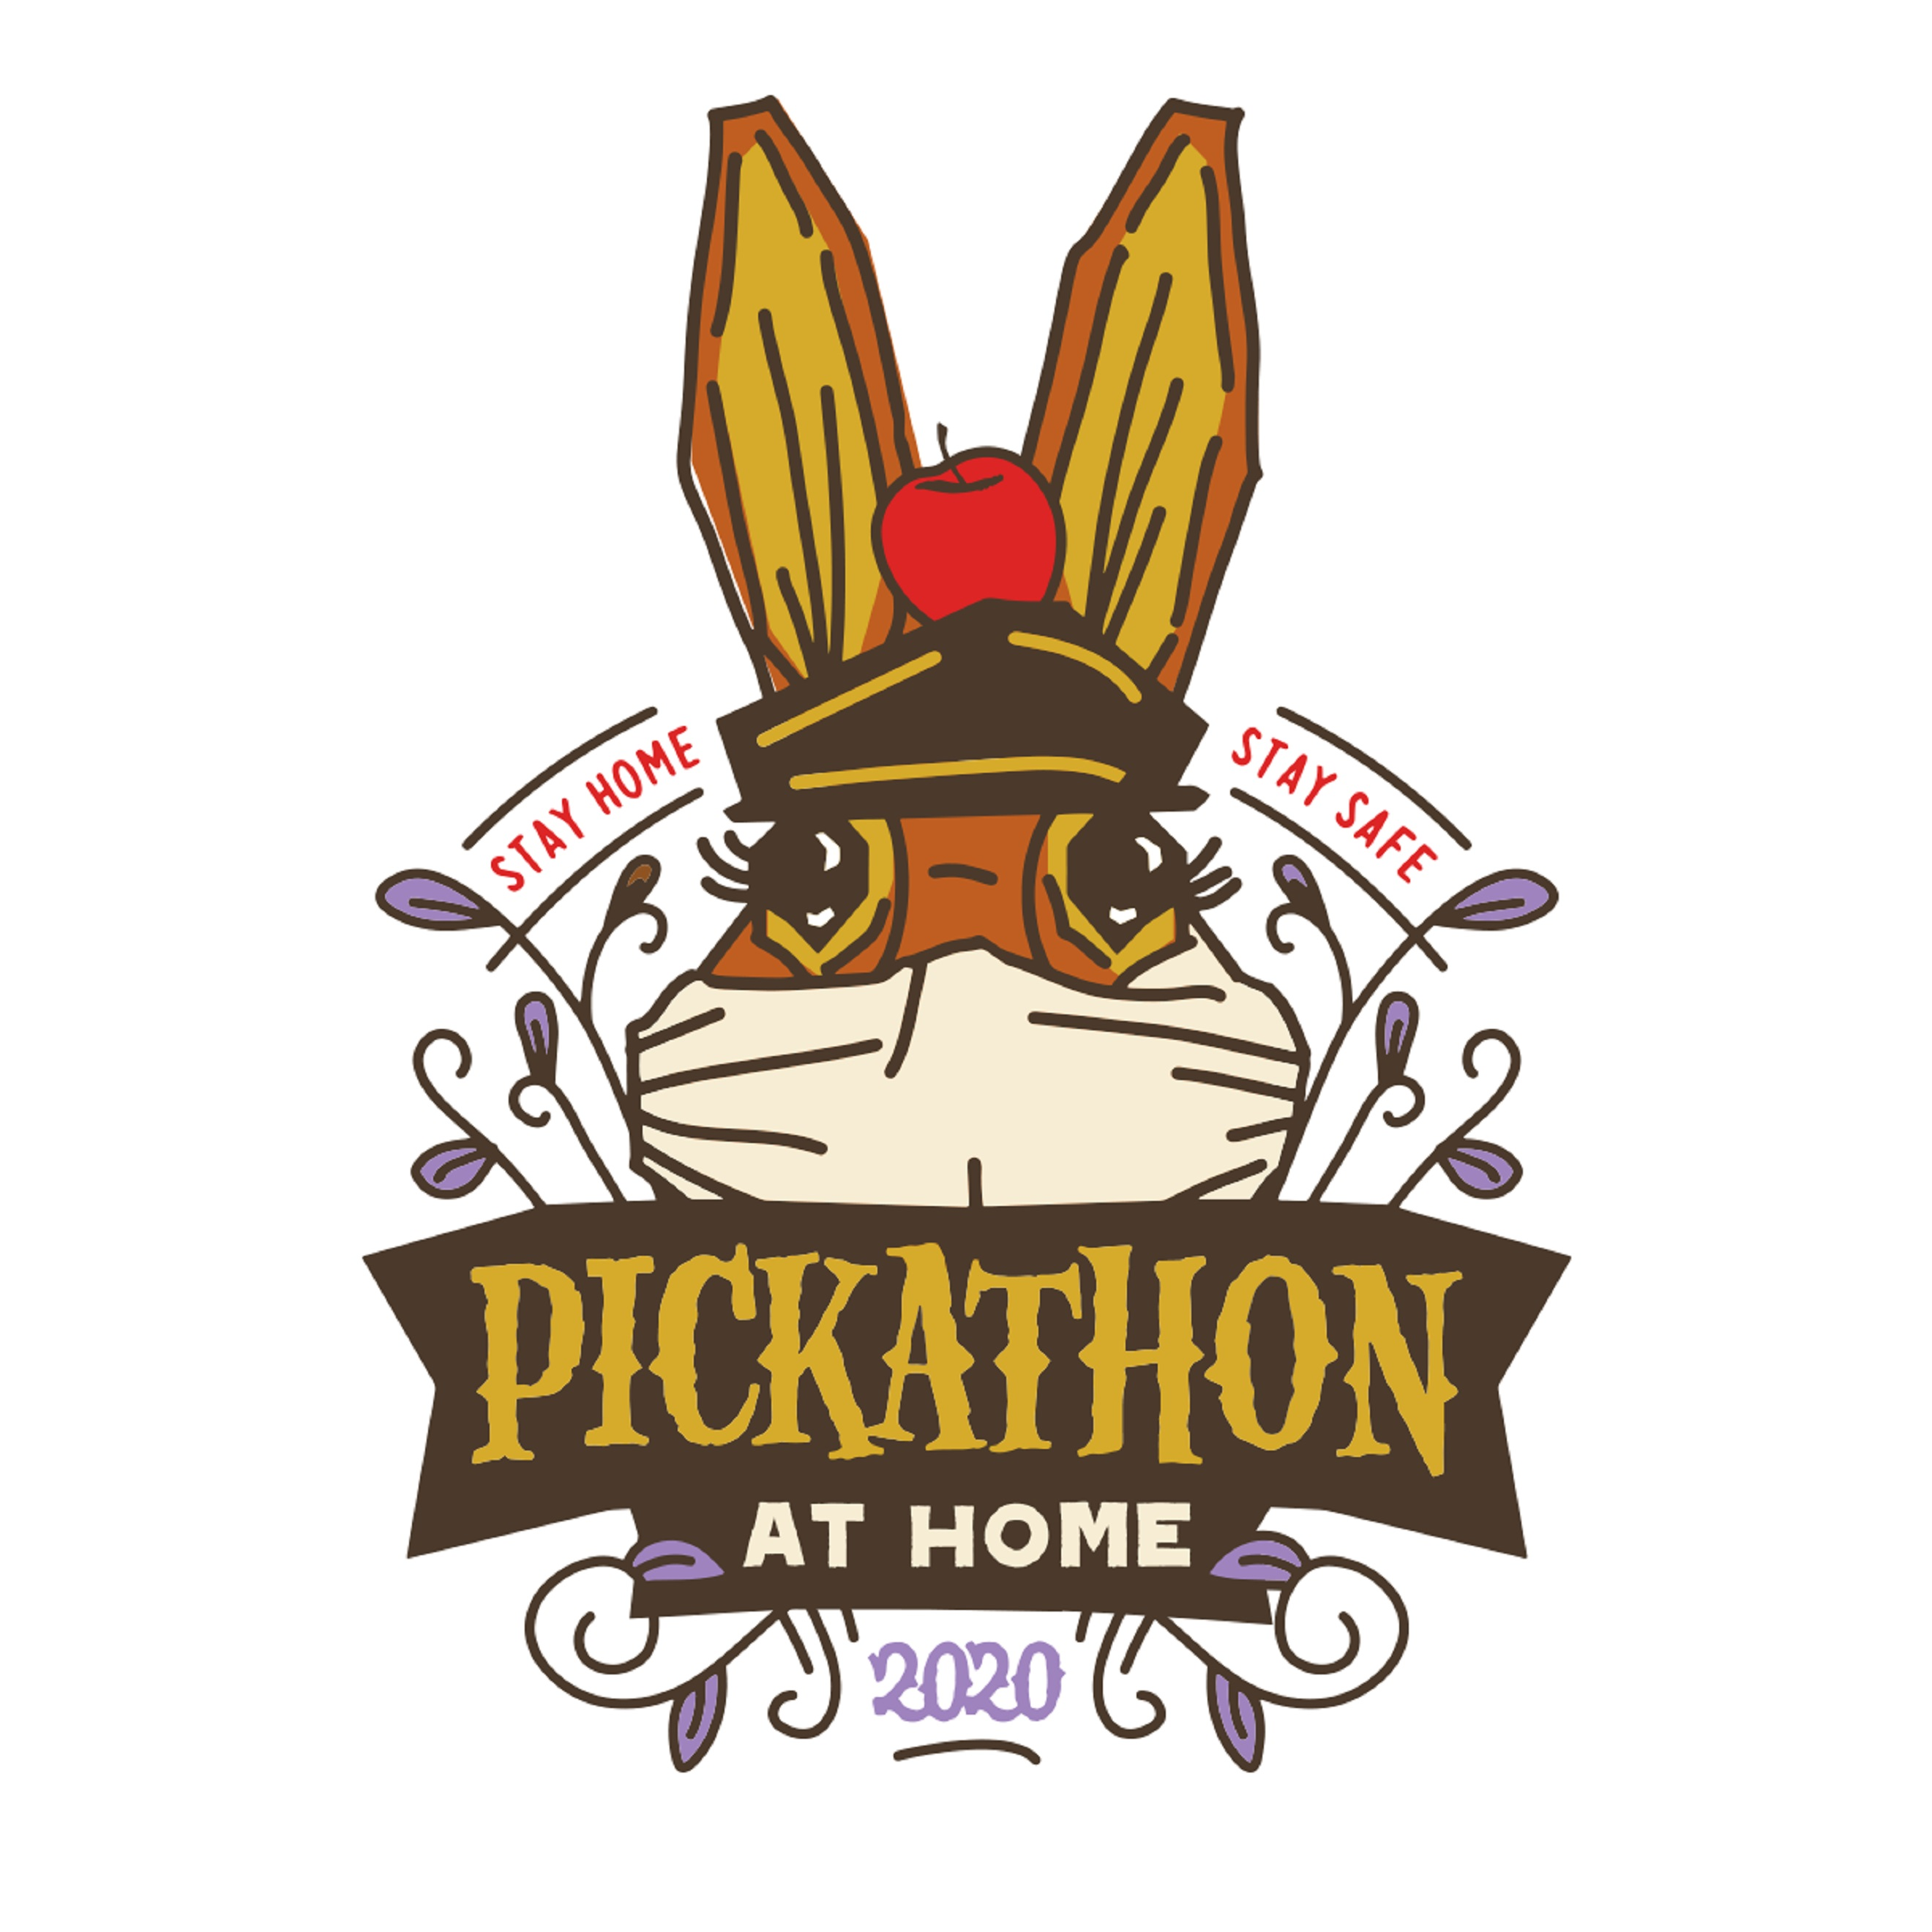 Pickathon At Home schedule - this weekend July 31 - Aug 2